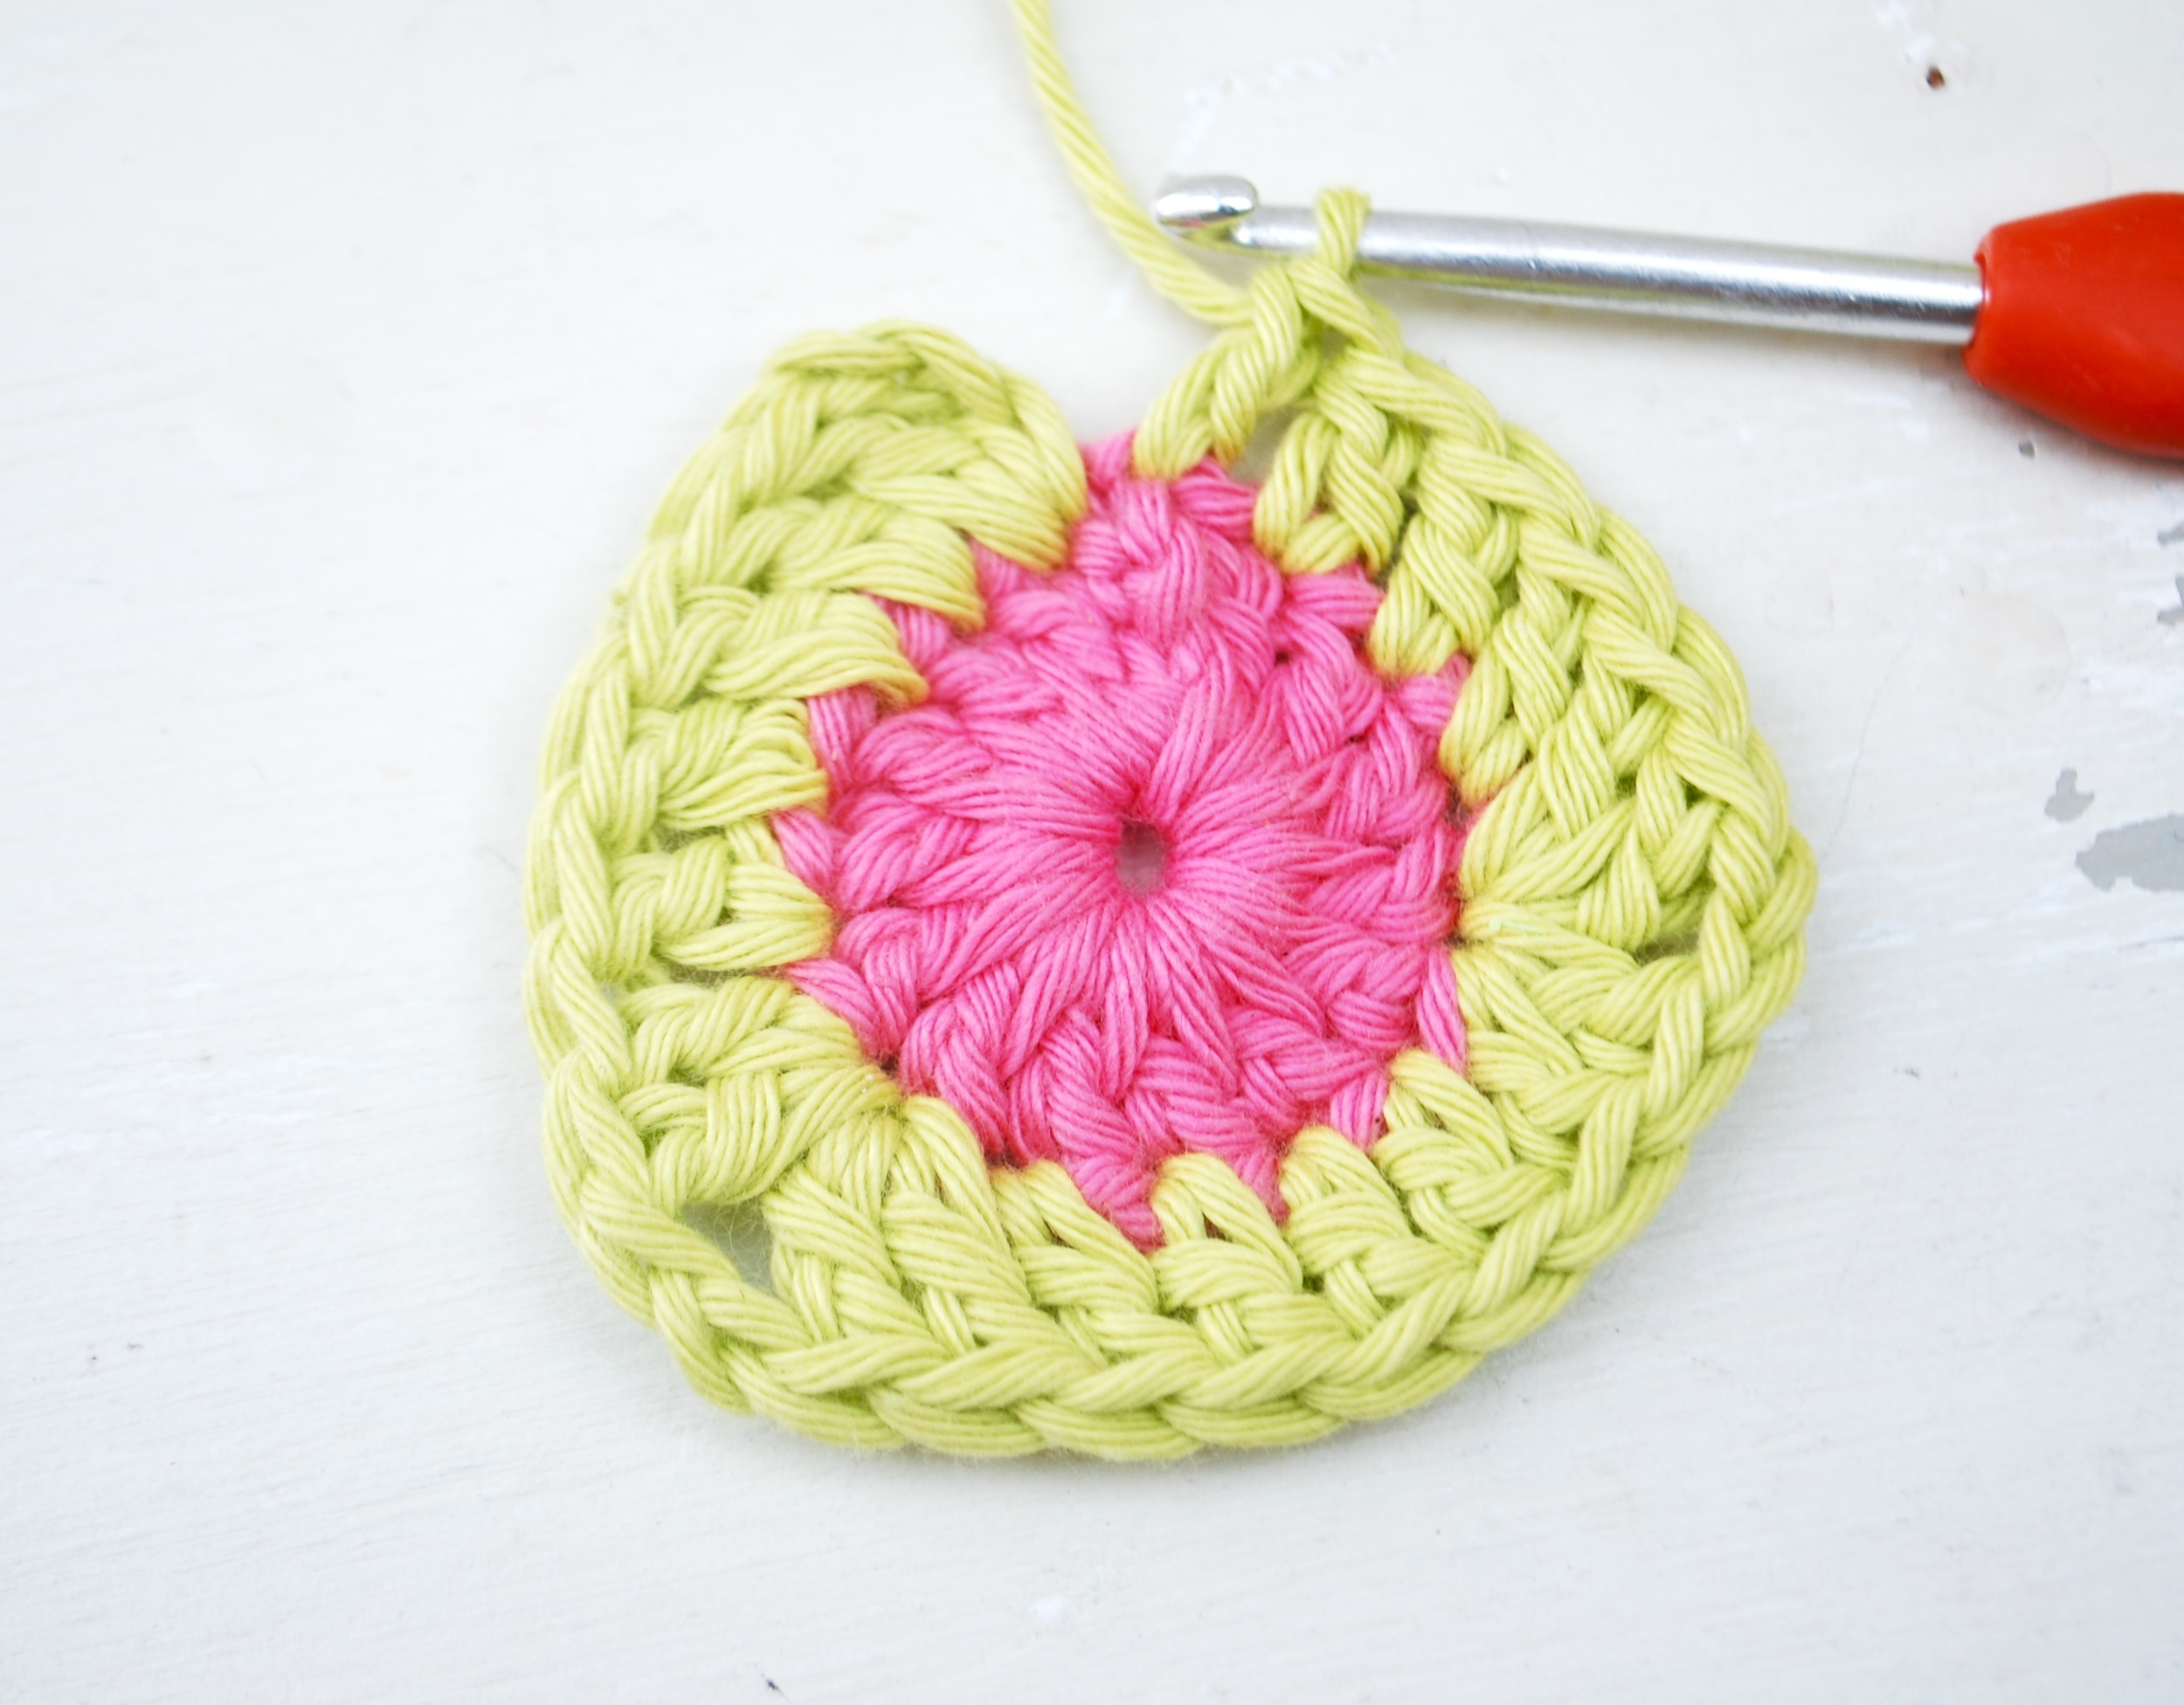 Work your second corner (2 treble crochet, chain 2 and 2 treble crochet all into same stitch) followed by 1 treble crochet into next 4 stitches.  This takes you to your 3rd and final corner (which is already half complete!)